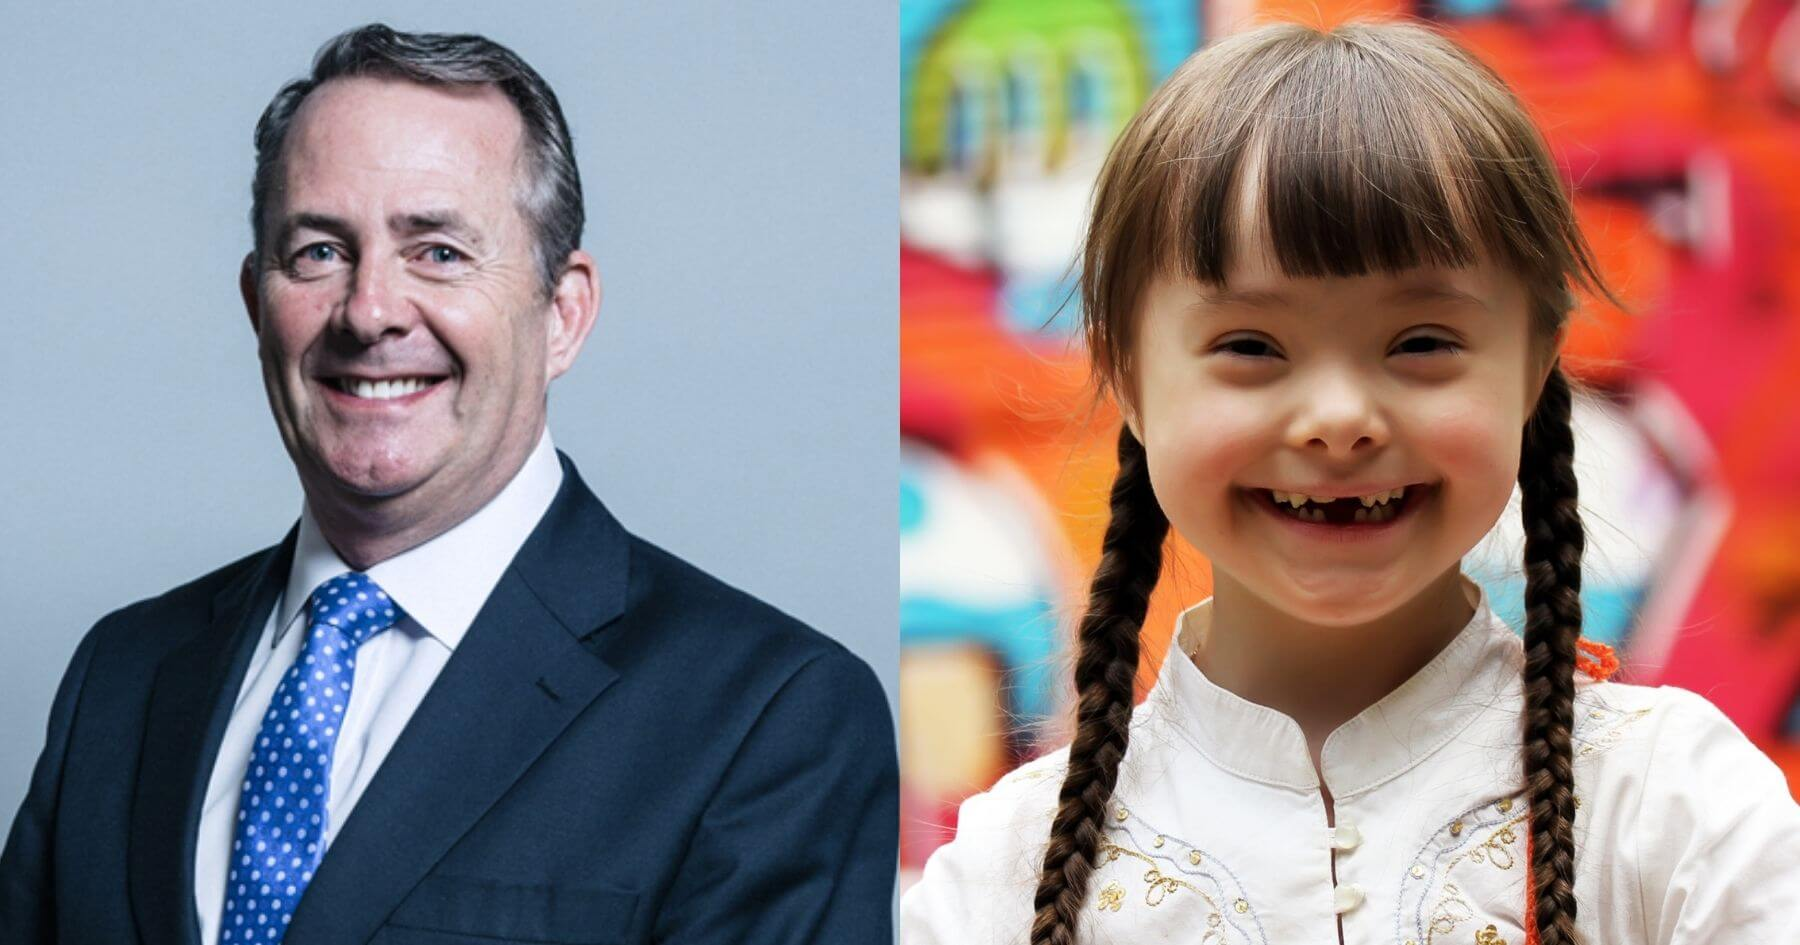 Press release - Dr Liam Fox MP introduces Down Syndrome Bill to improve life outcomes